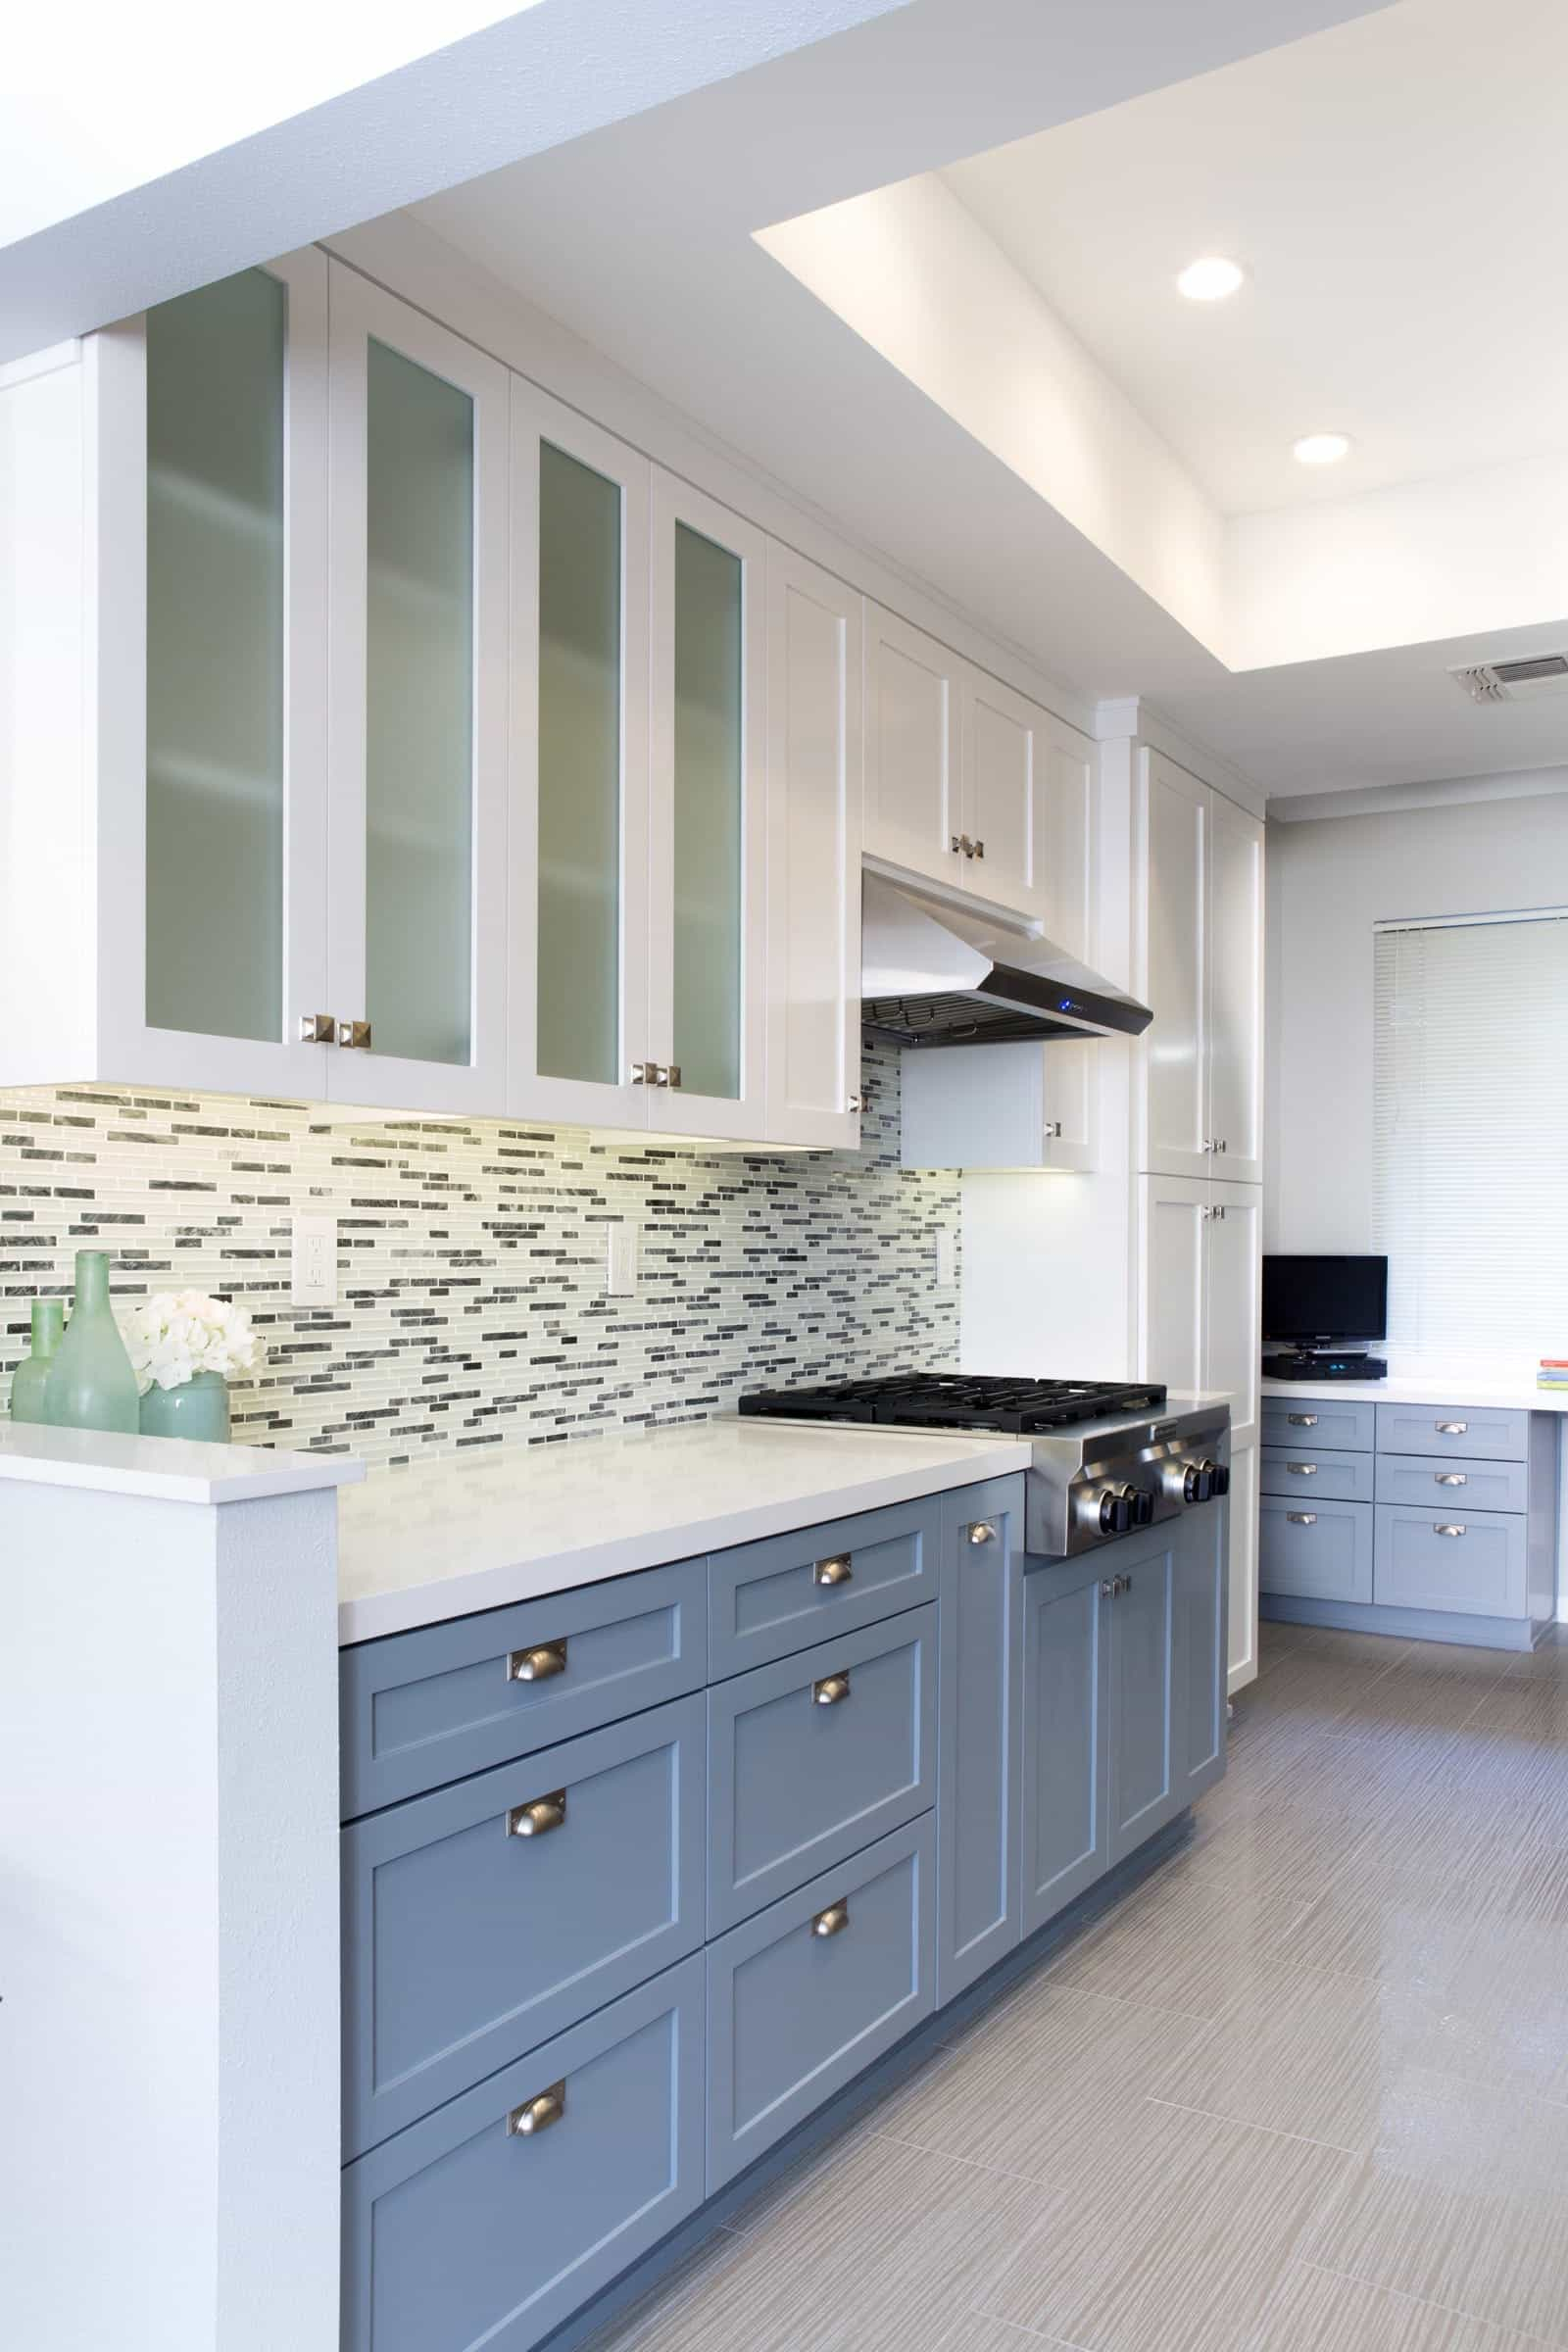 Gray And White Kitchen Features Two Colors Flat Cabinets And A Striking Glass Tile Backsplash (View 6 of 10)